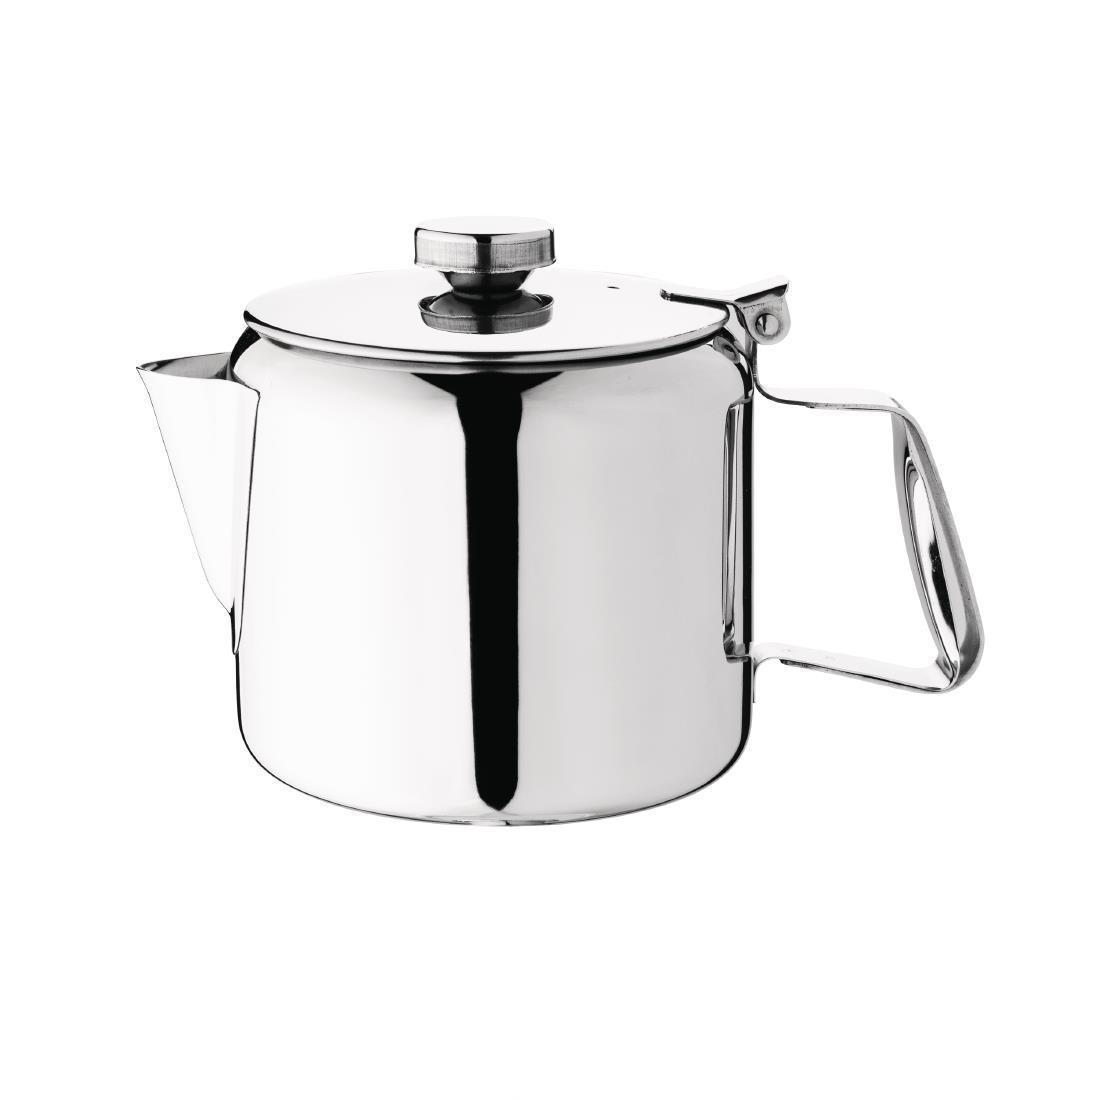 Olympia Concorde Stainless Steel Teapot 910ml